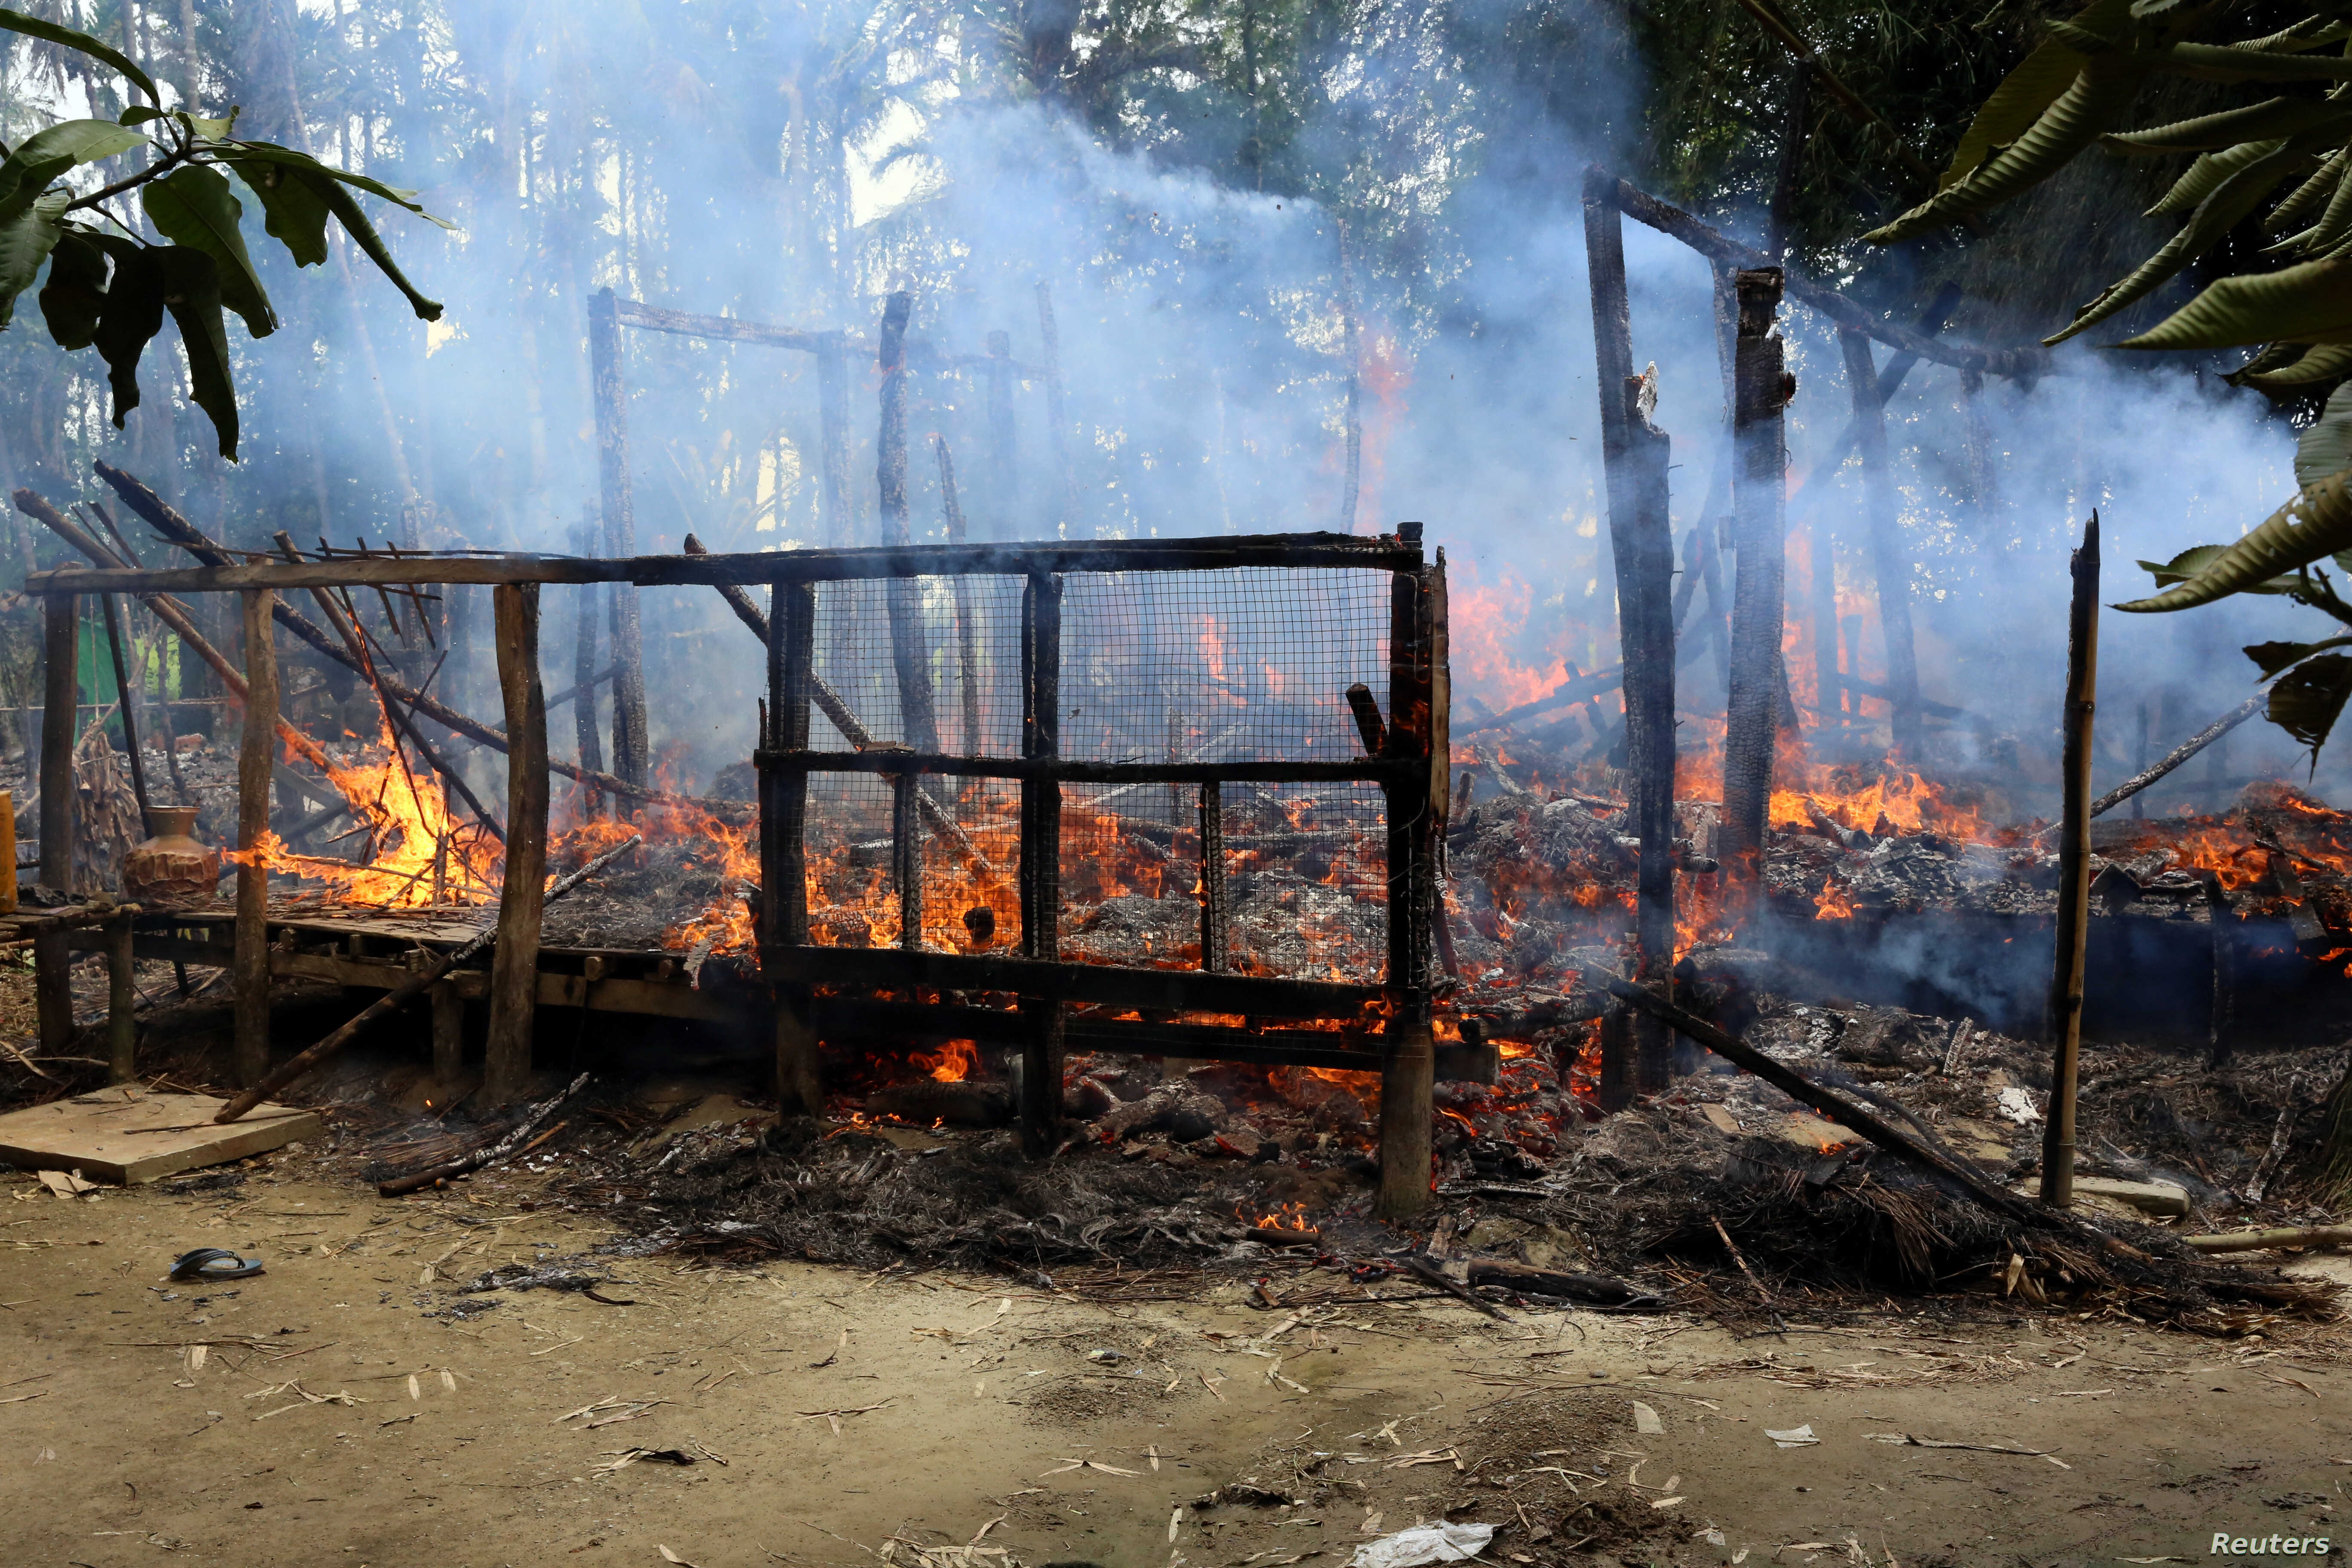 A house is seen on fire in Gawduthar village, Maungdaw township, in the north of Rakhine state, Myanmar, Sept. 7, 2017.